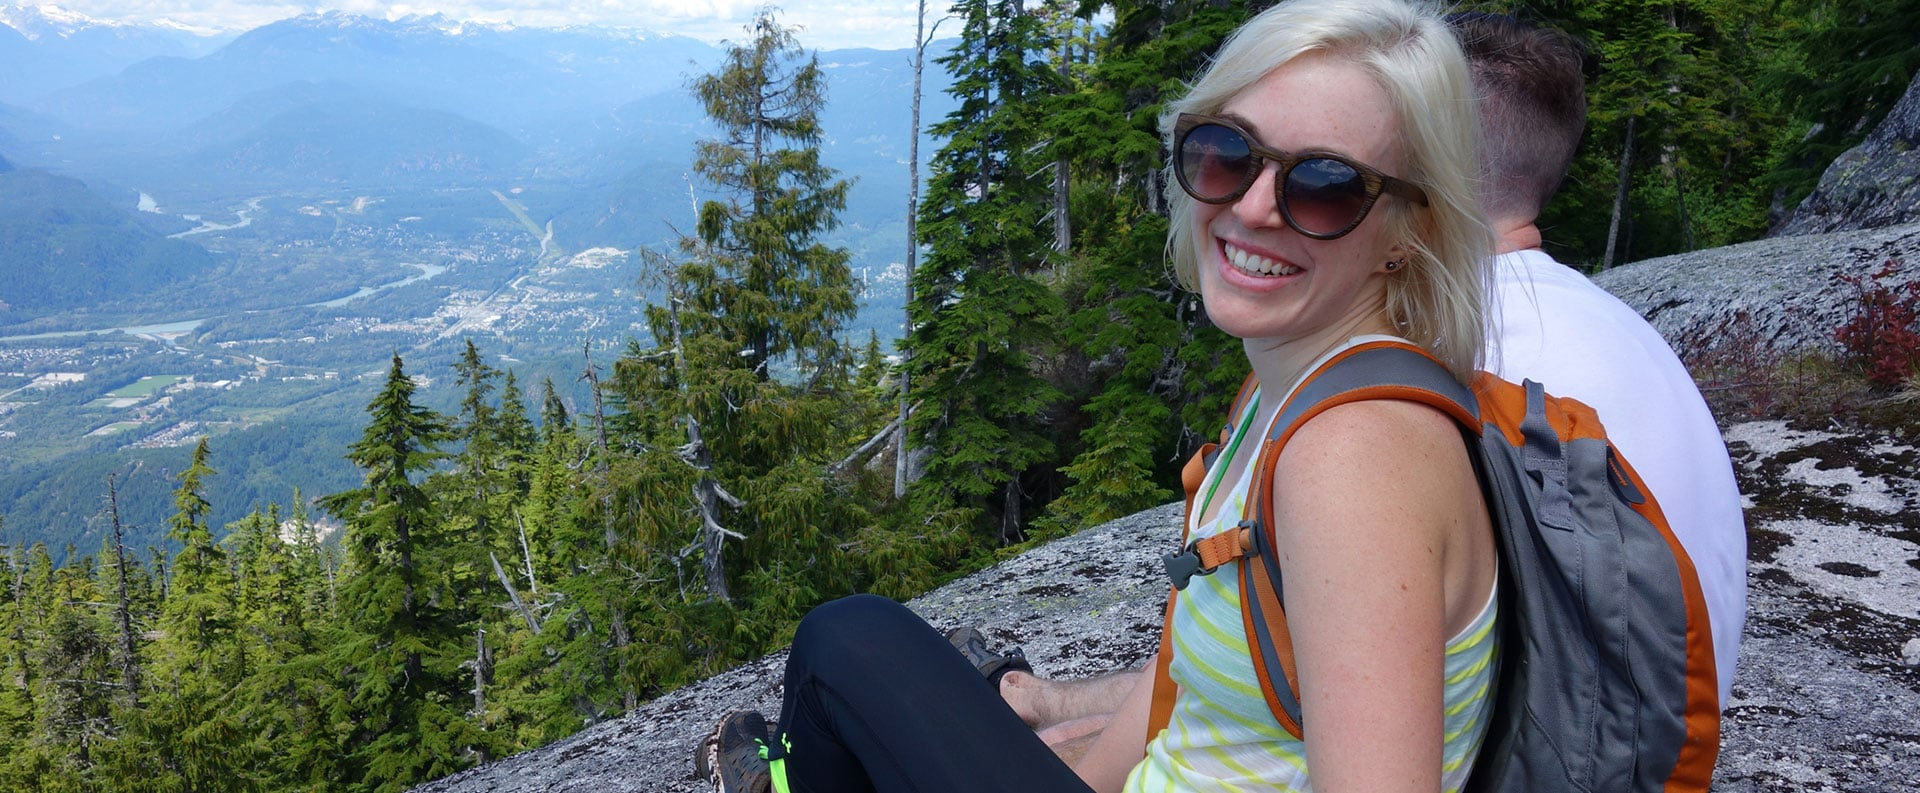 A smiling blonde female hiker in sunglasses sits on a mountain peak surrounded by green trees overlooking grasslands, green hills and mountain vegetation below.